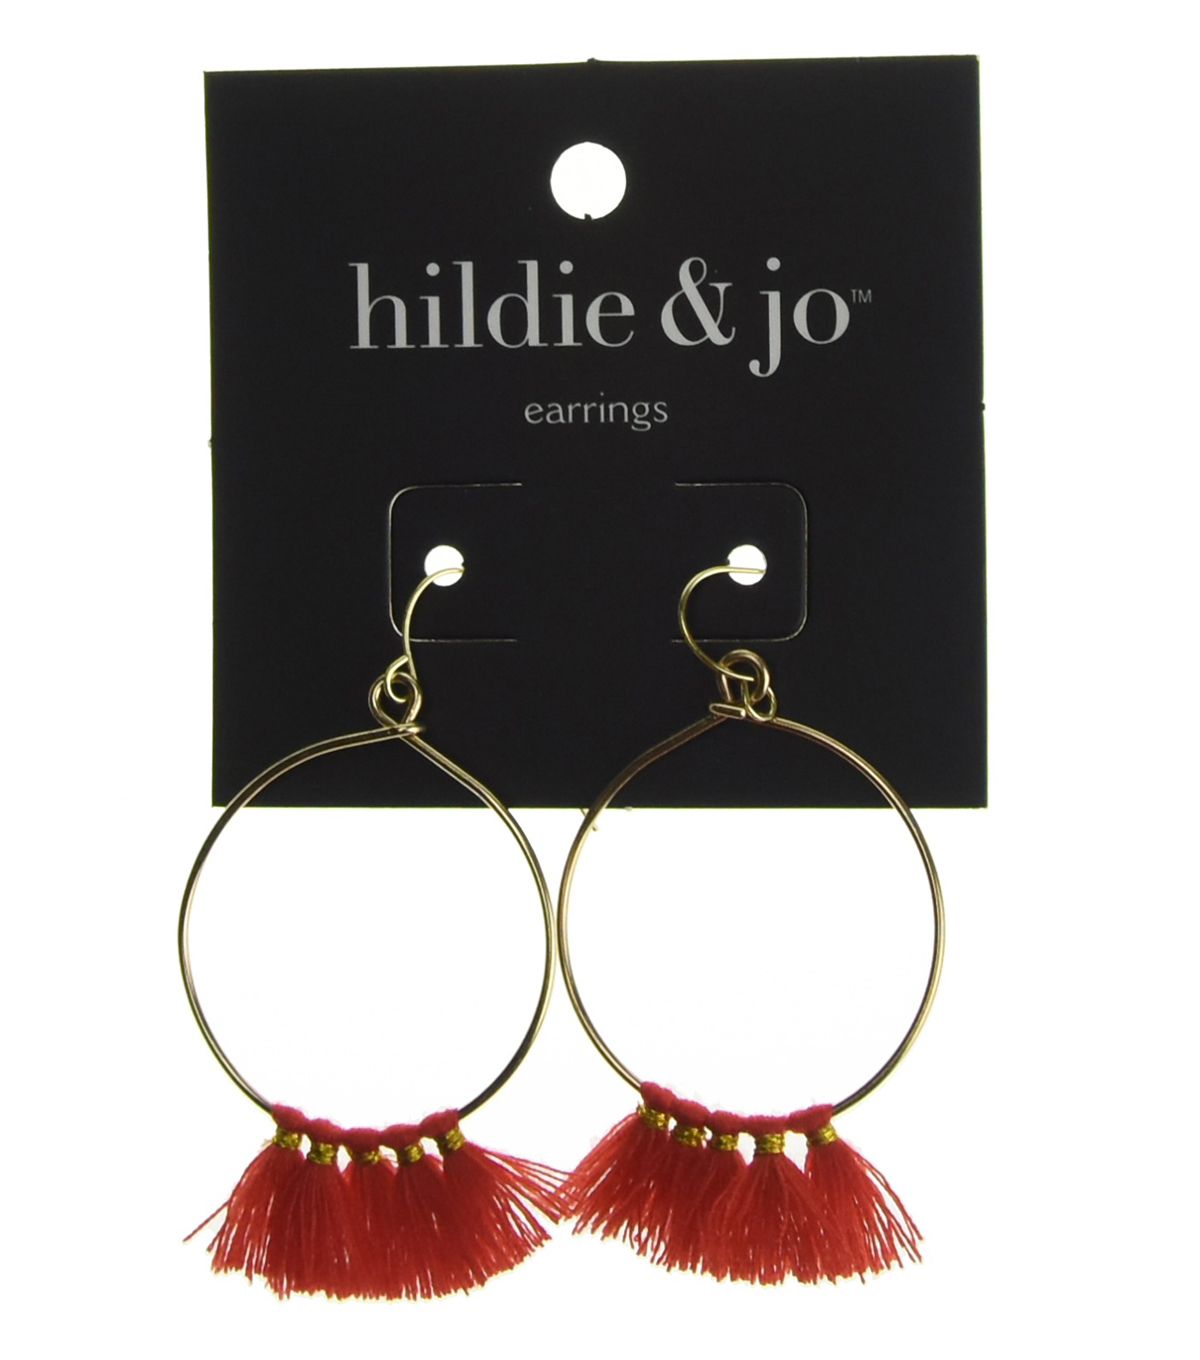 hildie & jo Hoop Earrings-Gold with Red Tassels